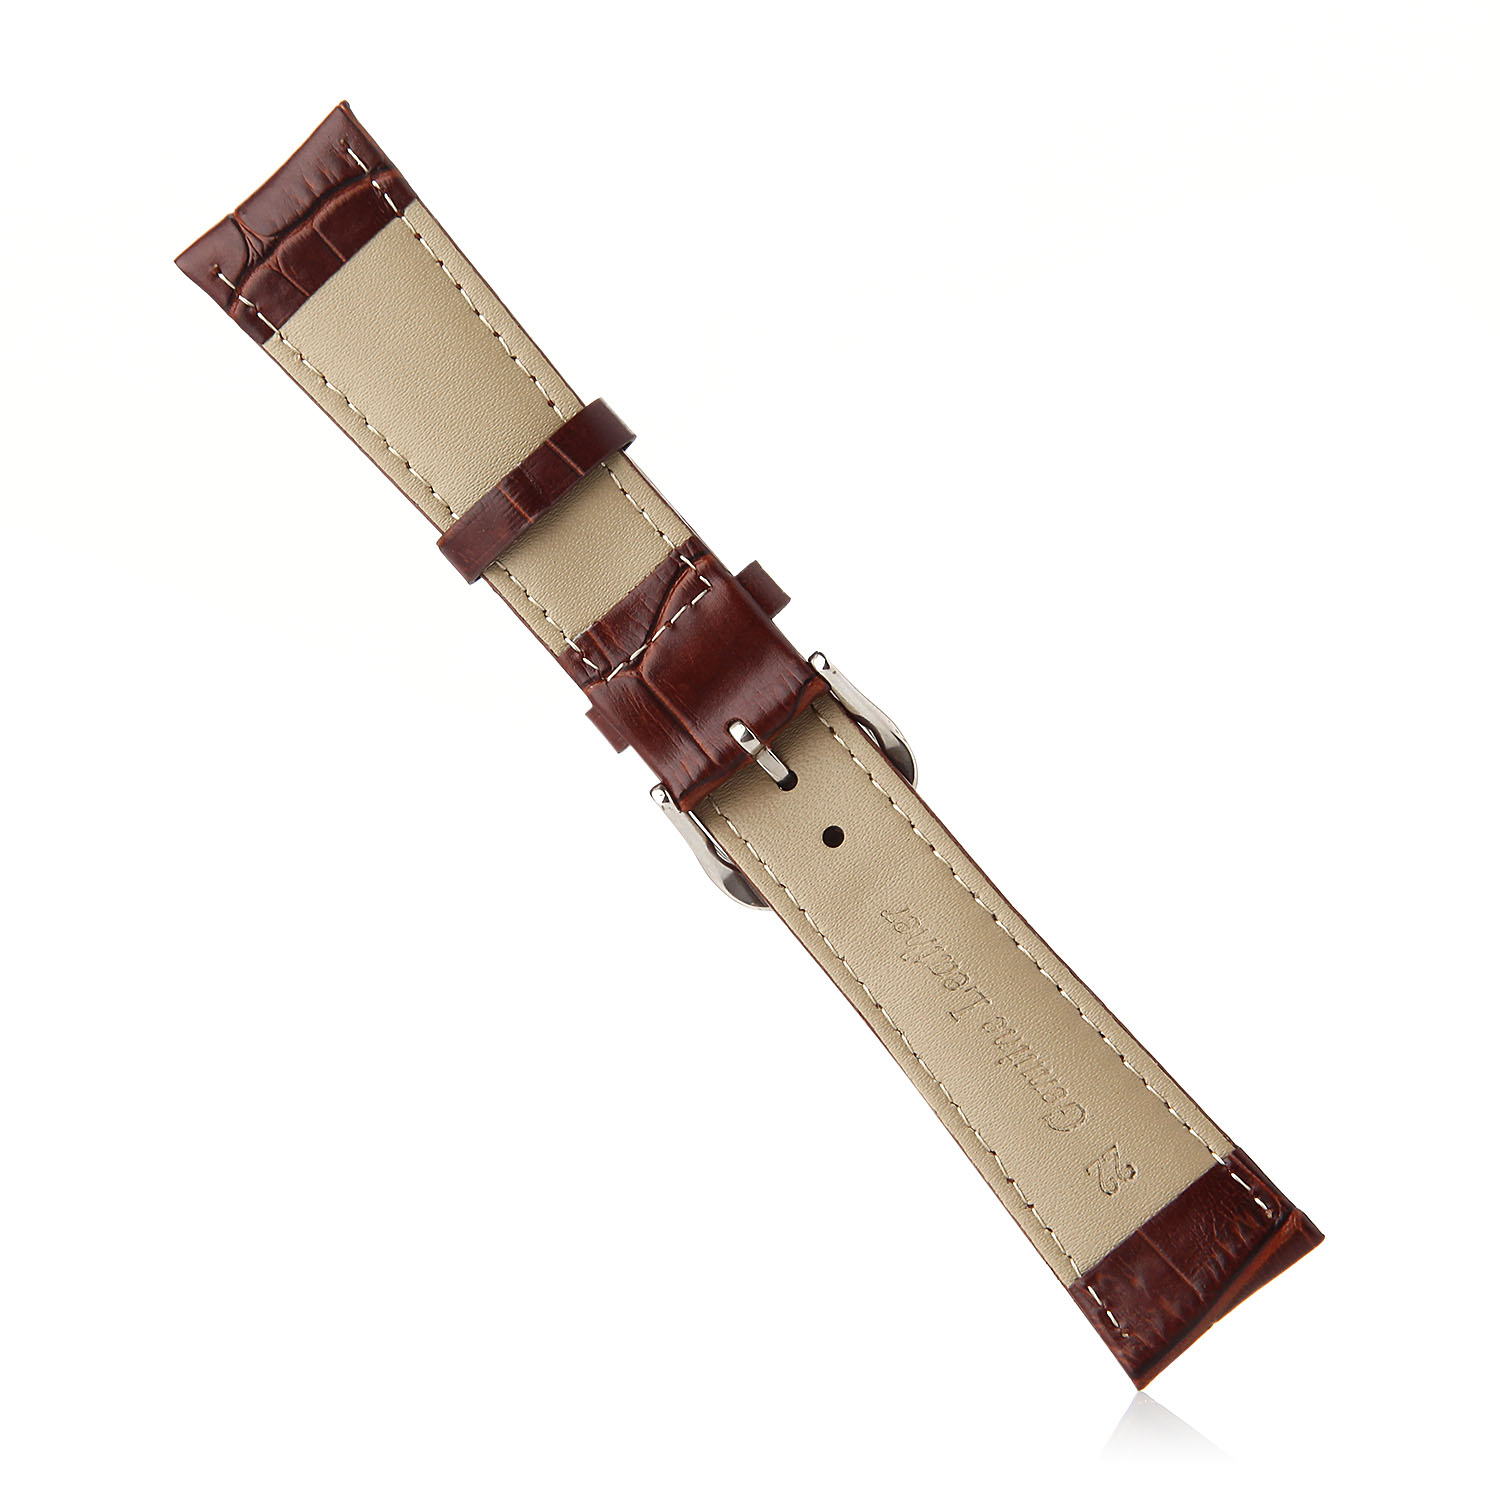 Crocodile Split Leather Buckle Watch Bands Straps For Apple Watch 38mm&42mm Brown